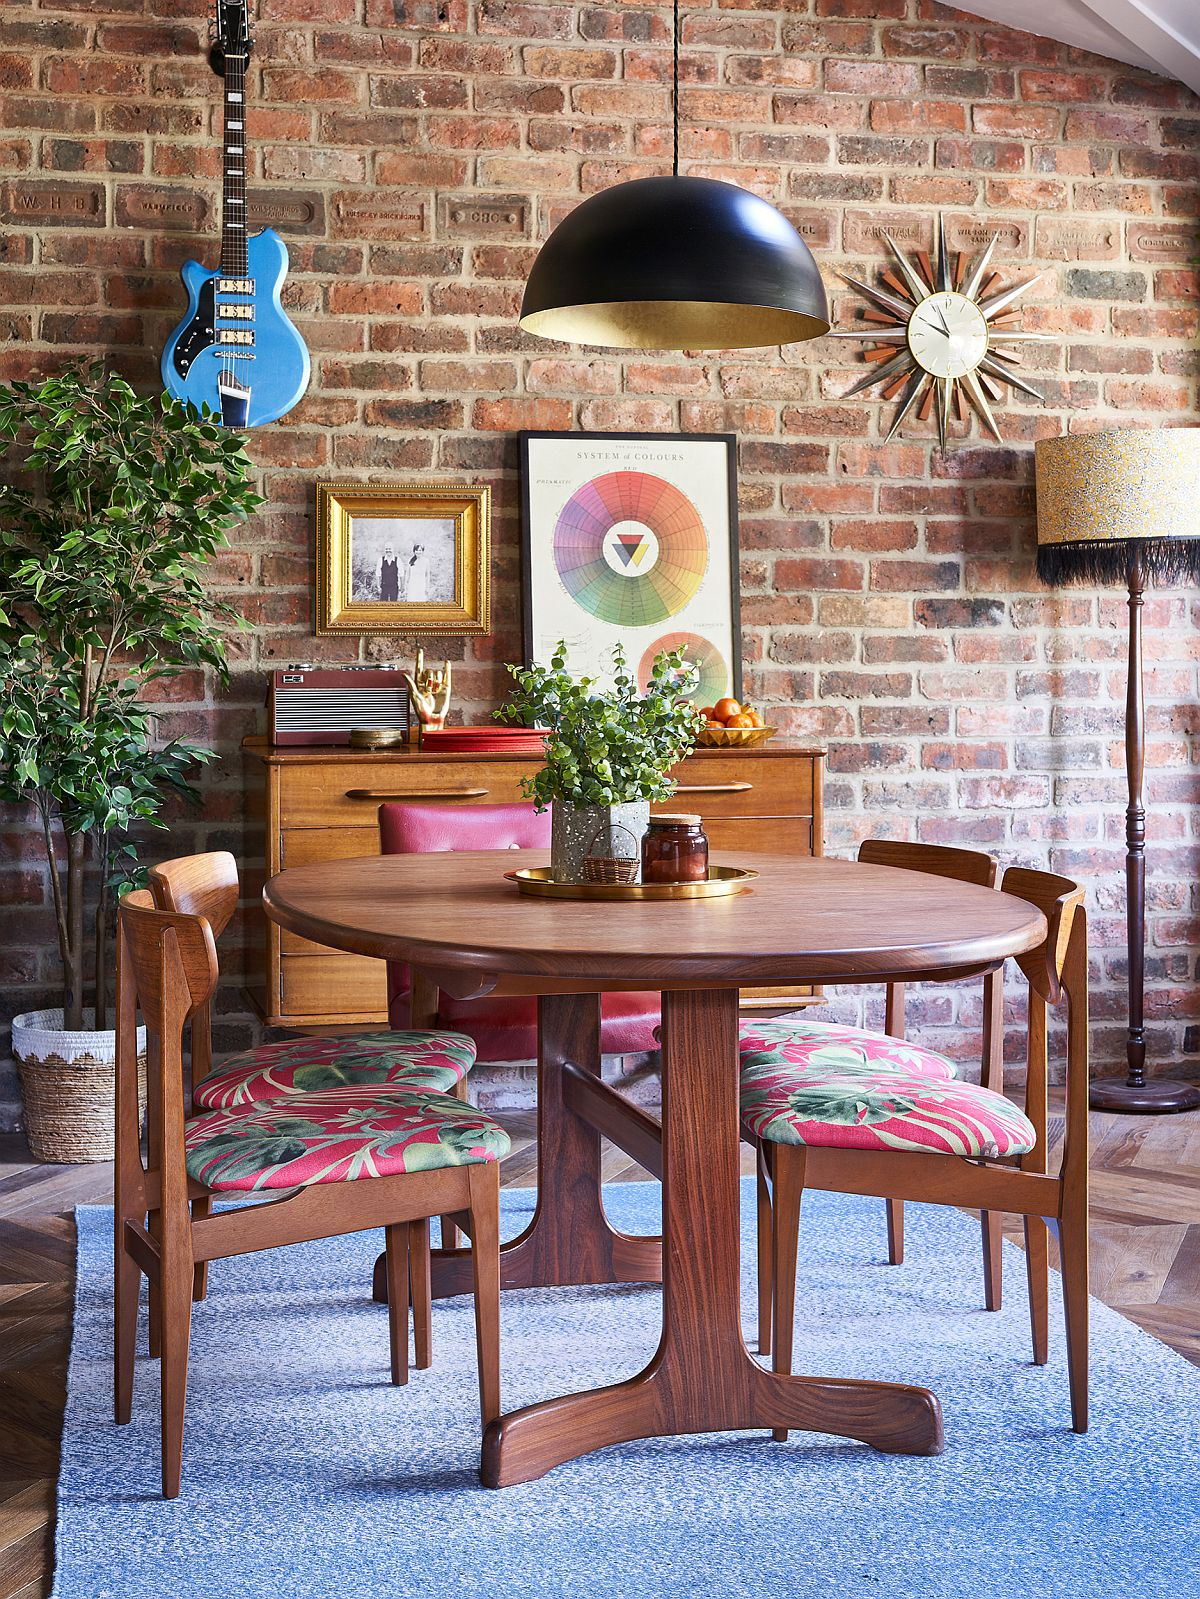 Beautiful brick walls are a hit even in the modern dining room